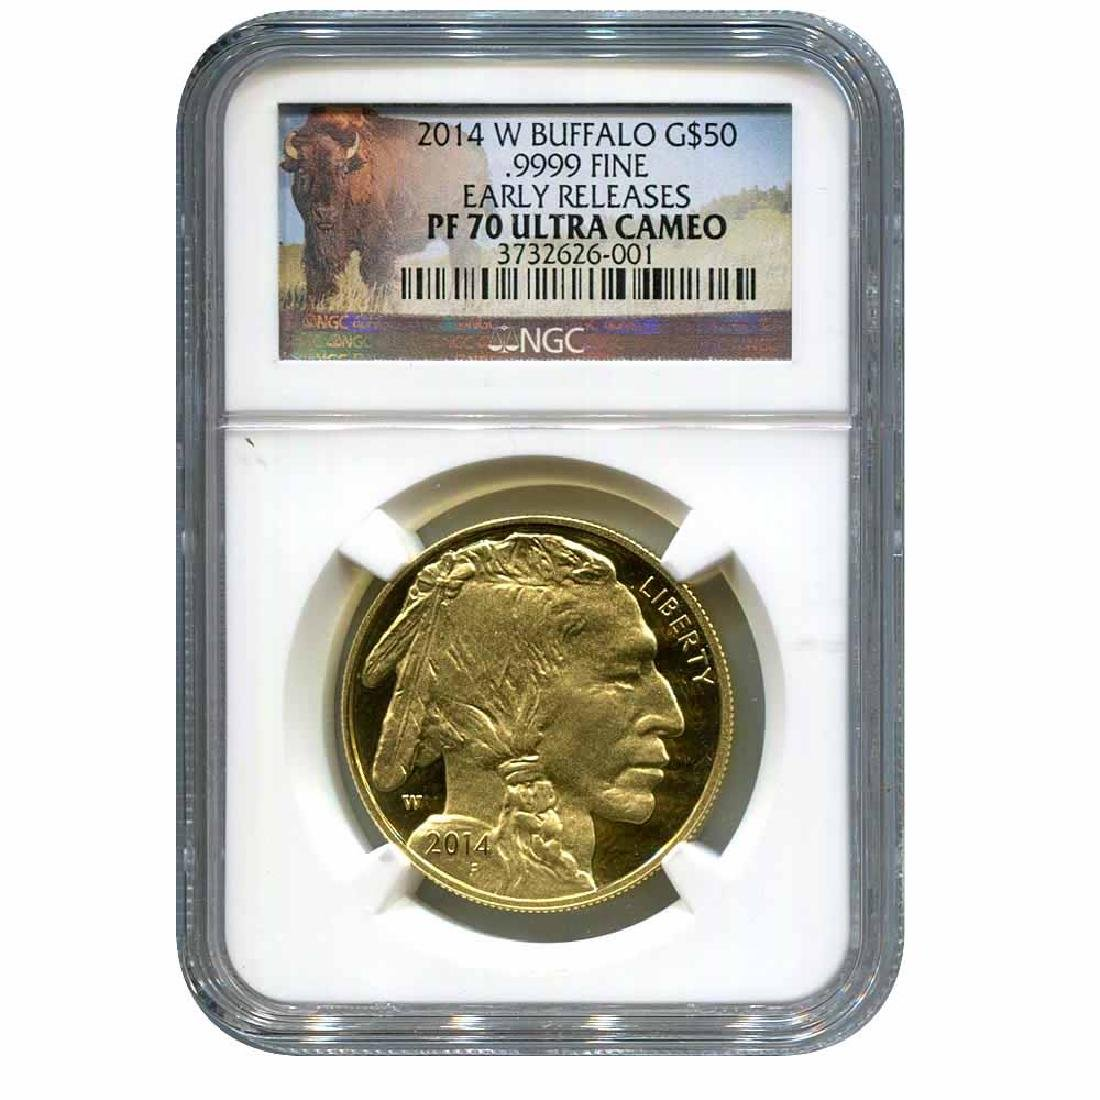 Certified Proof Buffalo Gold Coin 2014-W PF70 Ultra Cam